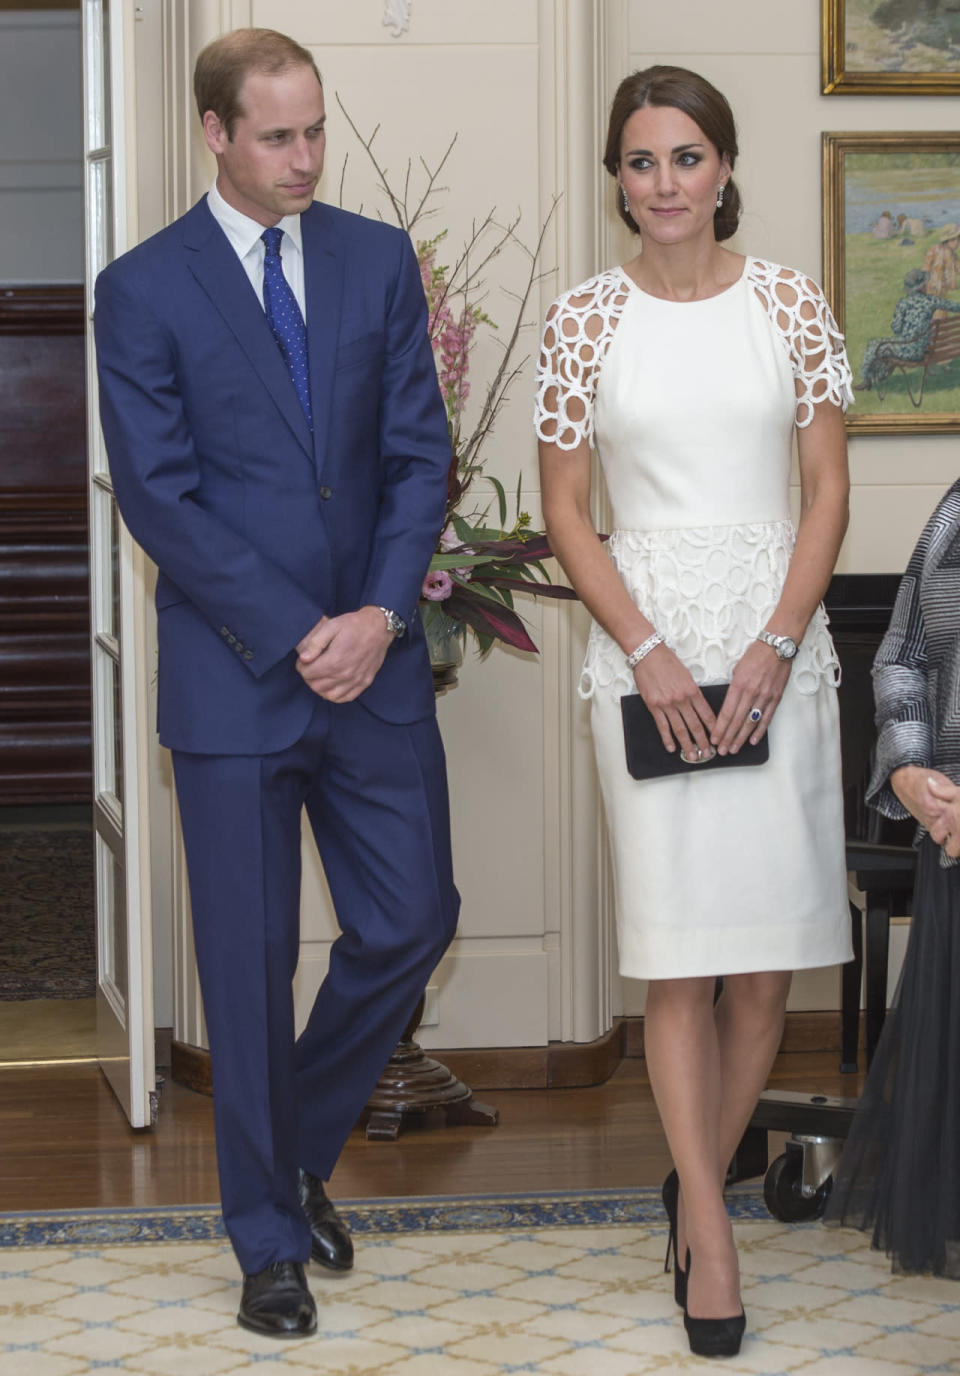 <p>For a reception in Australia, Kate donned a chic white dress by Lela Rose. Jimmy Choo heels and a Mulberry clutch topped off her outfit. </p><p><i>[Photo: PA]</i></p>